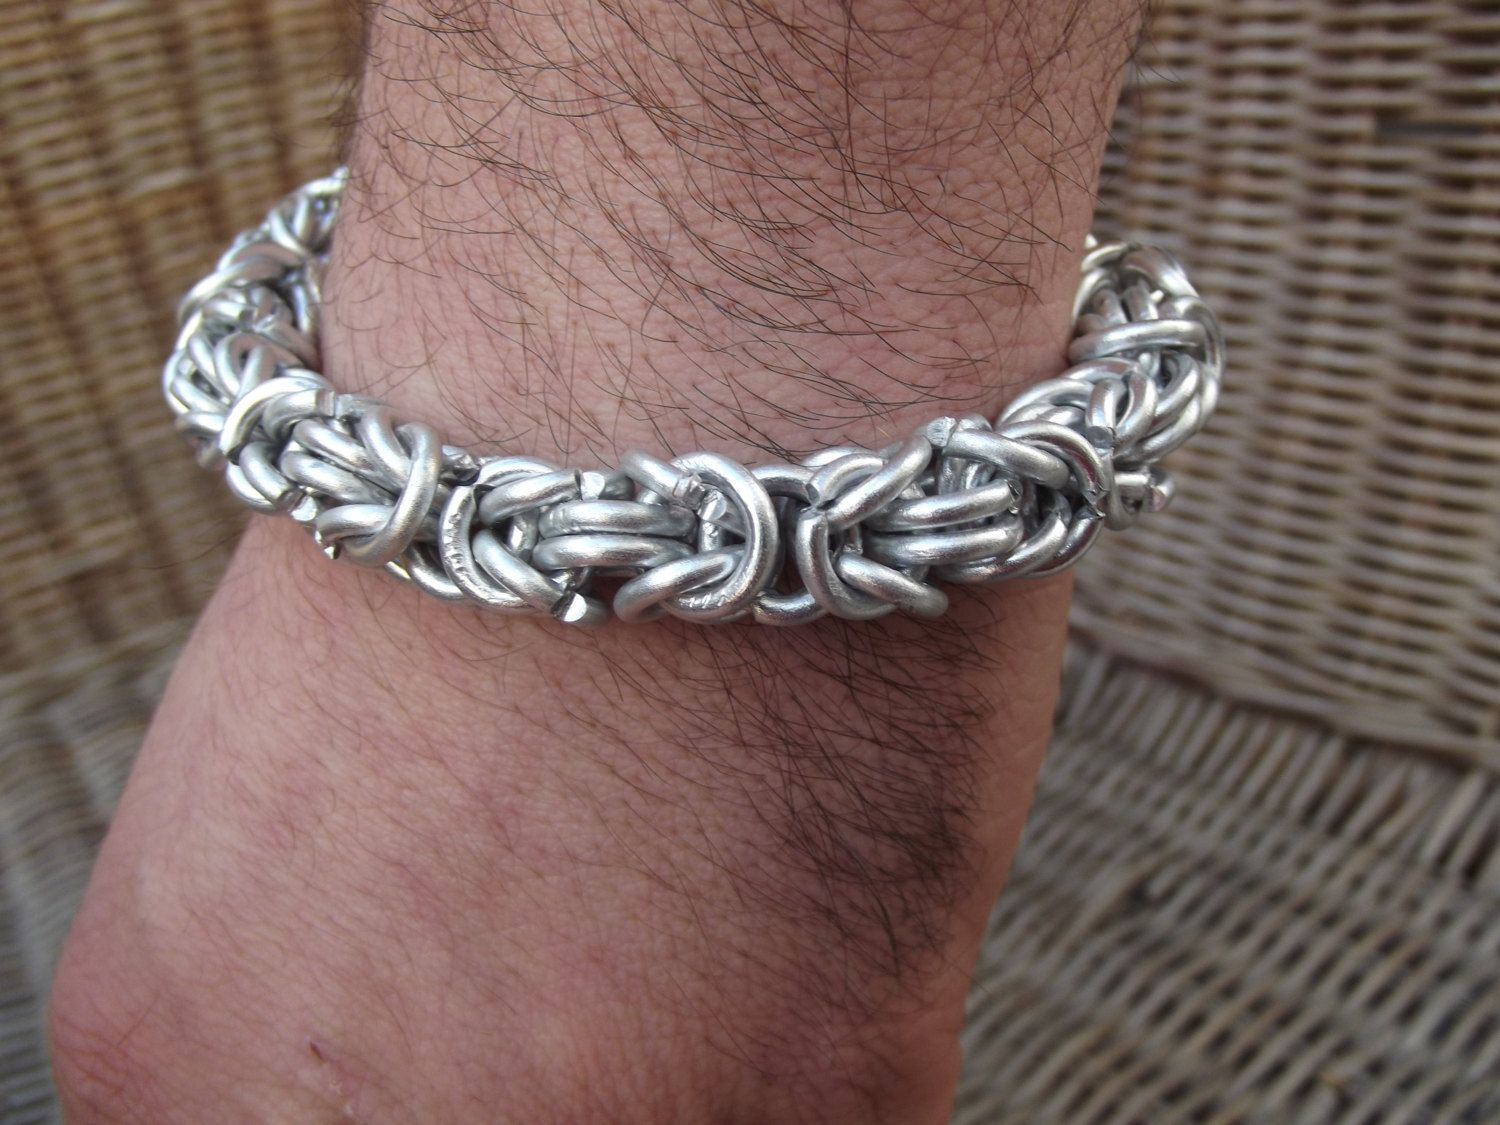 silver bracelet jewelry chainbracelet chain bling square link sterling mens indian